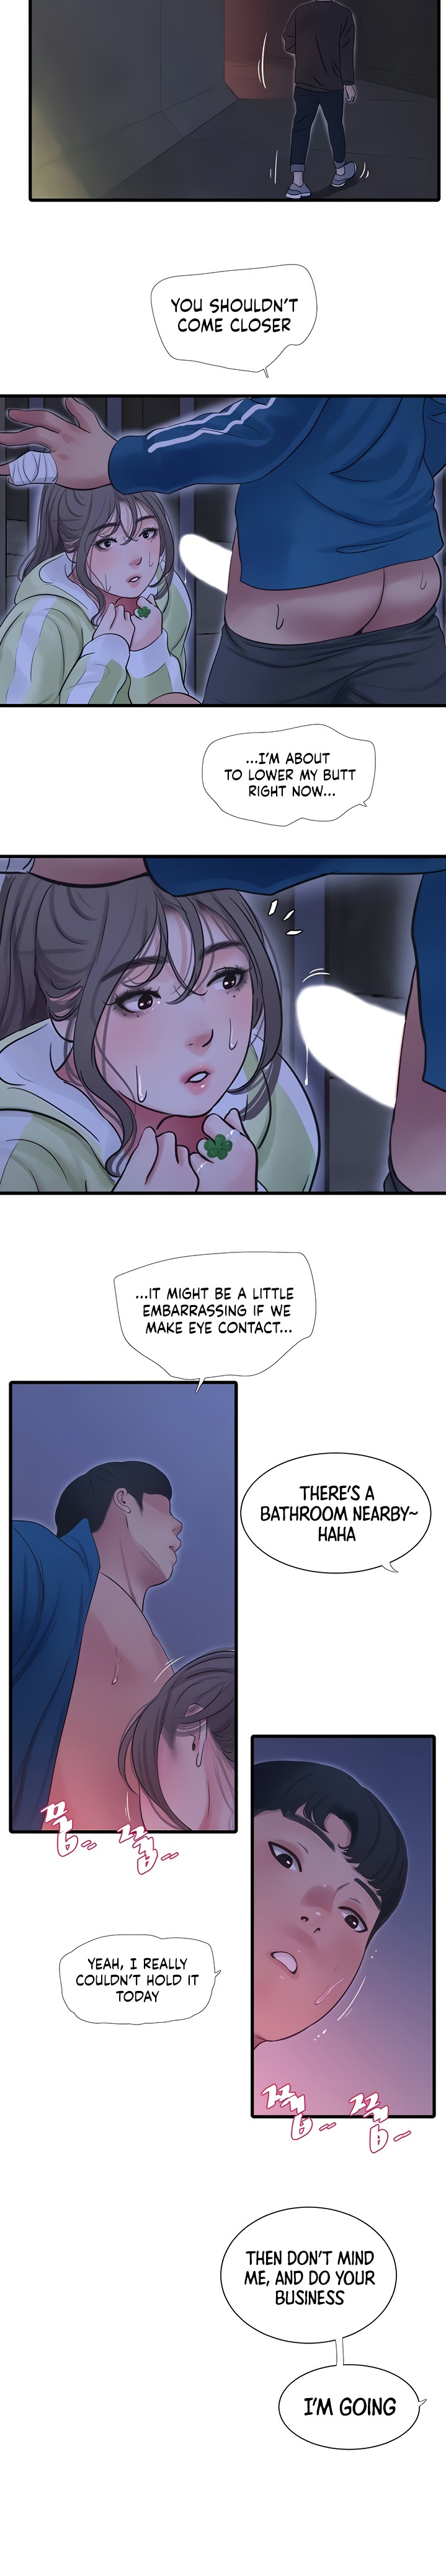 One's In-Laws Virgins - Chapter 74 Page 5